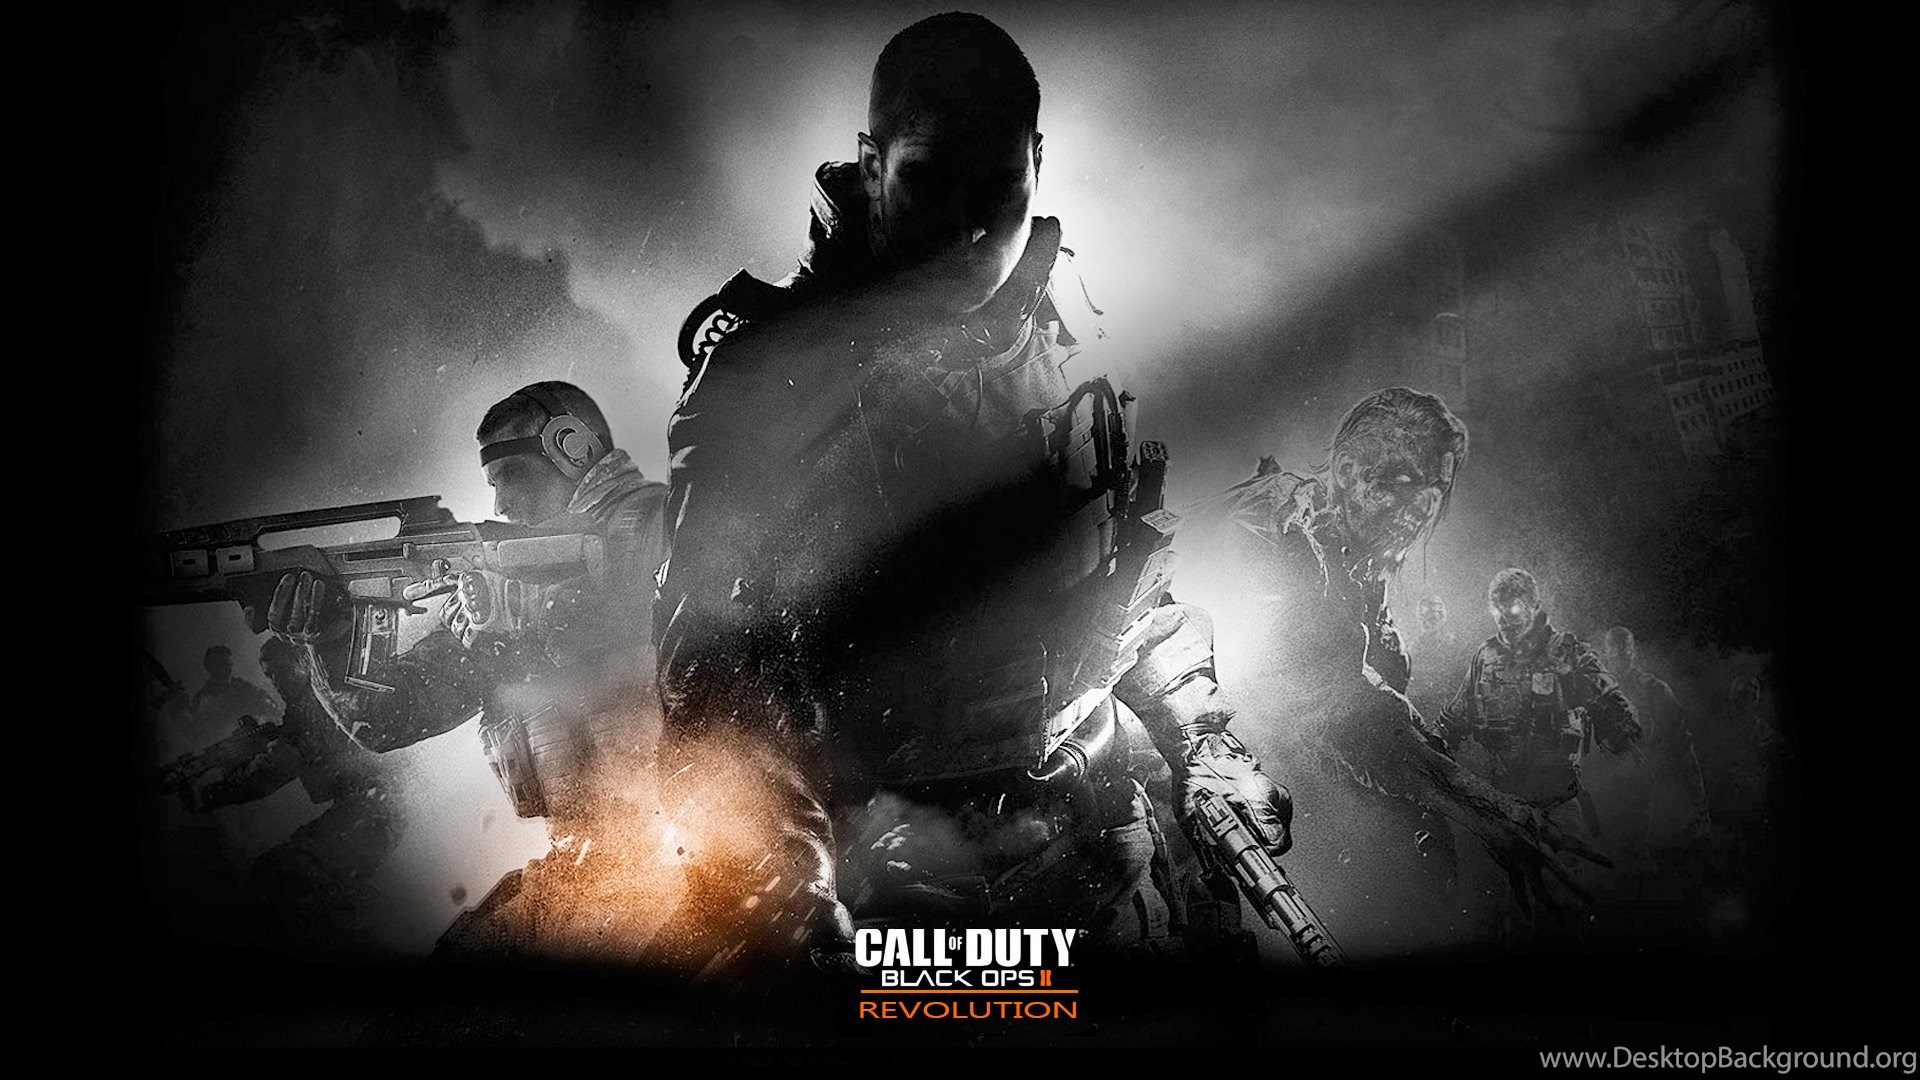 Call Of Duty Black Ops 2 Wallpapers Desktop Background